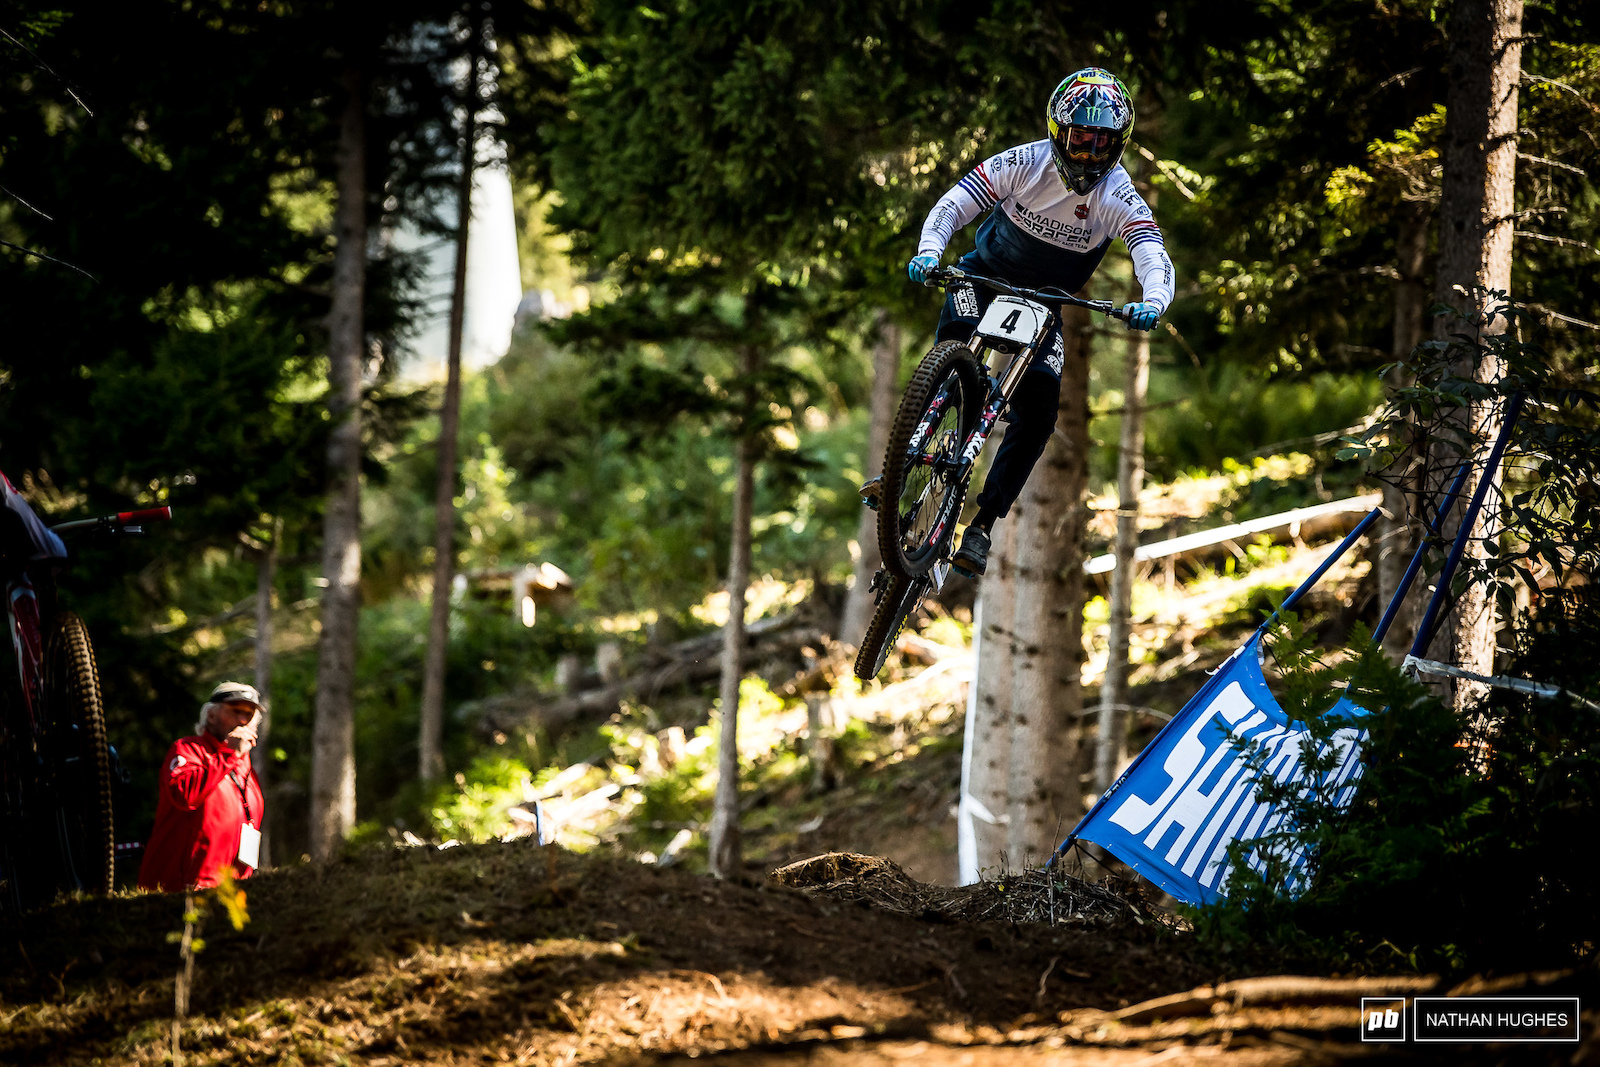 Hart sending the huge gap in the new loam section that few others could find the speed for.